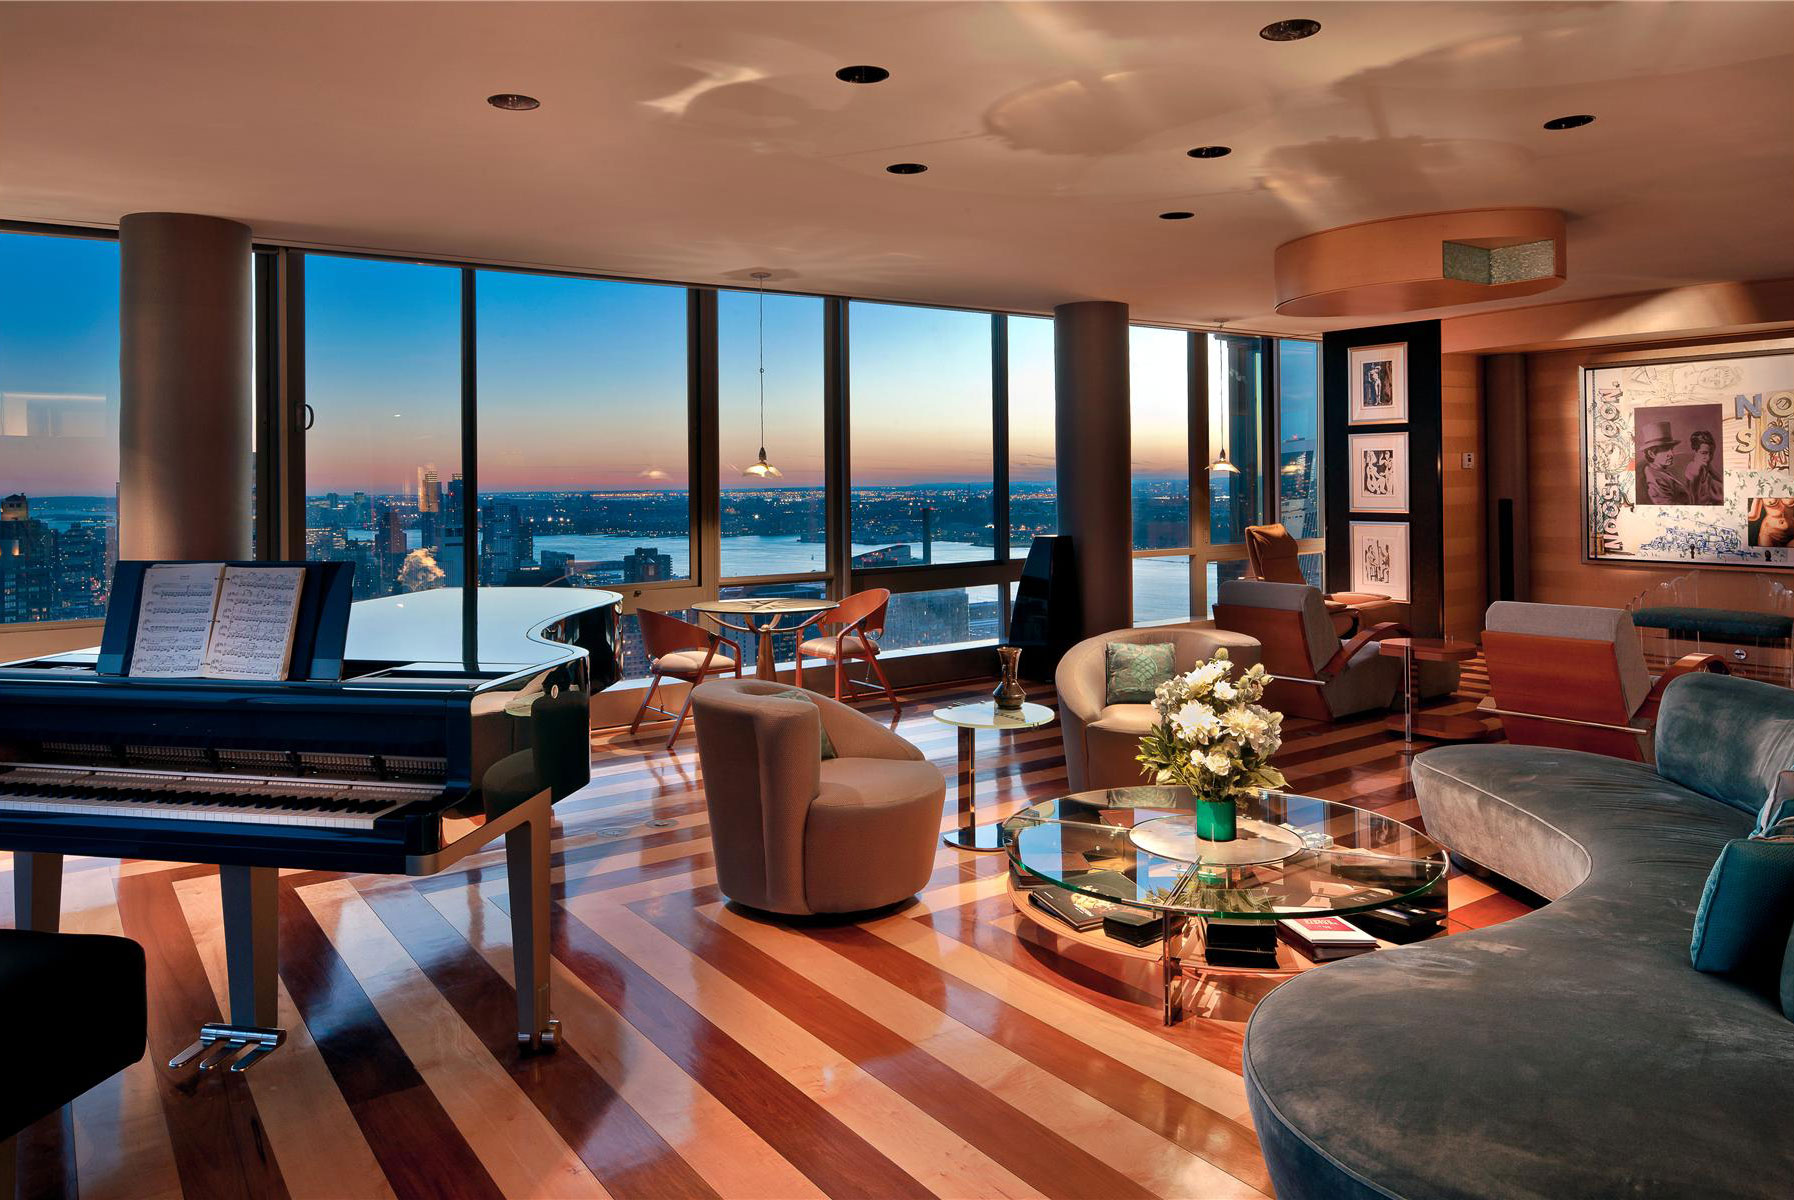 The gartner penthouse for sale in new york city for Apartment new york for sale